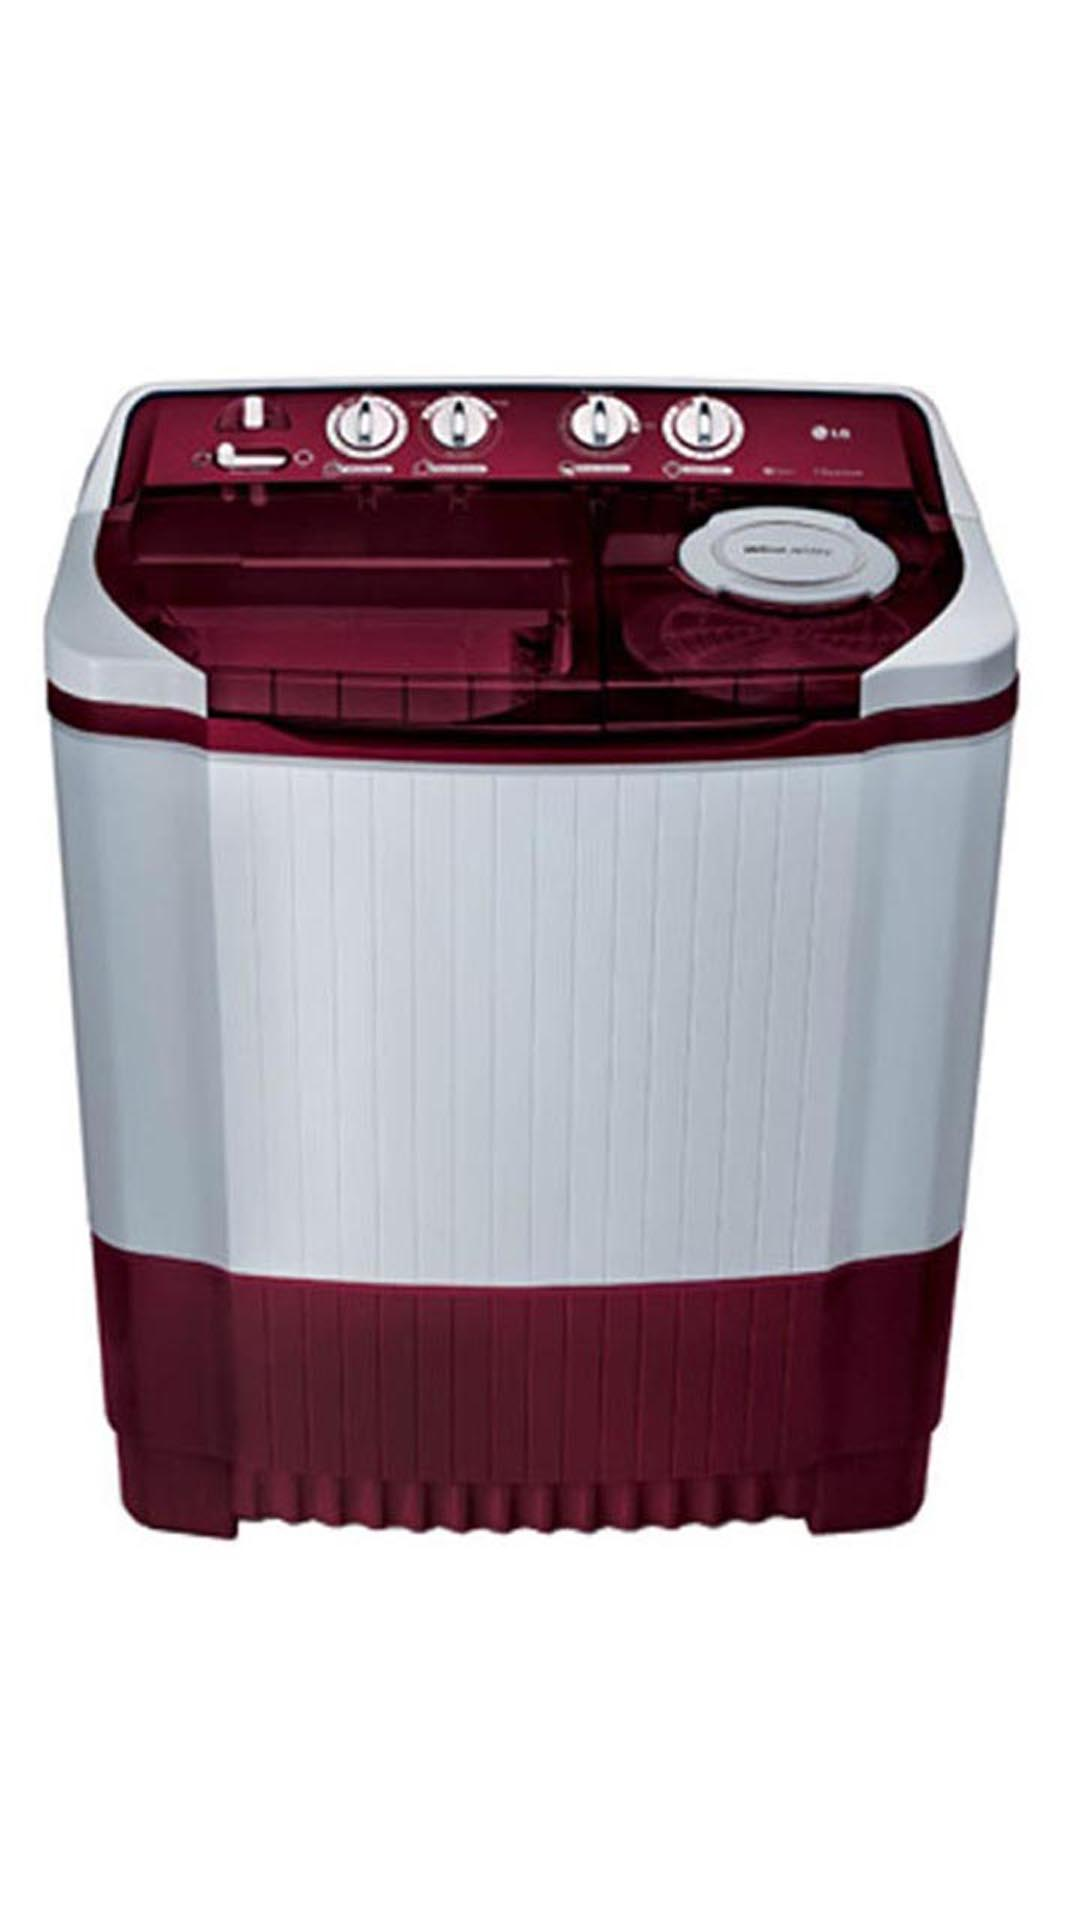 LG P9032R3SM Semi-Automatic Top Loading 8 Kg Washing Machine (White & Burgundy)